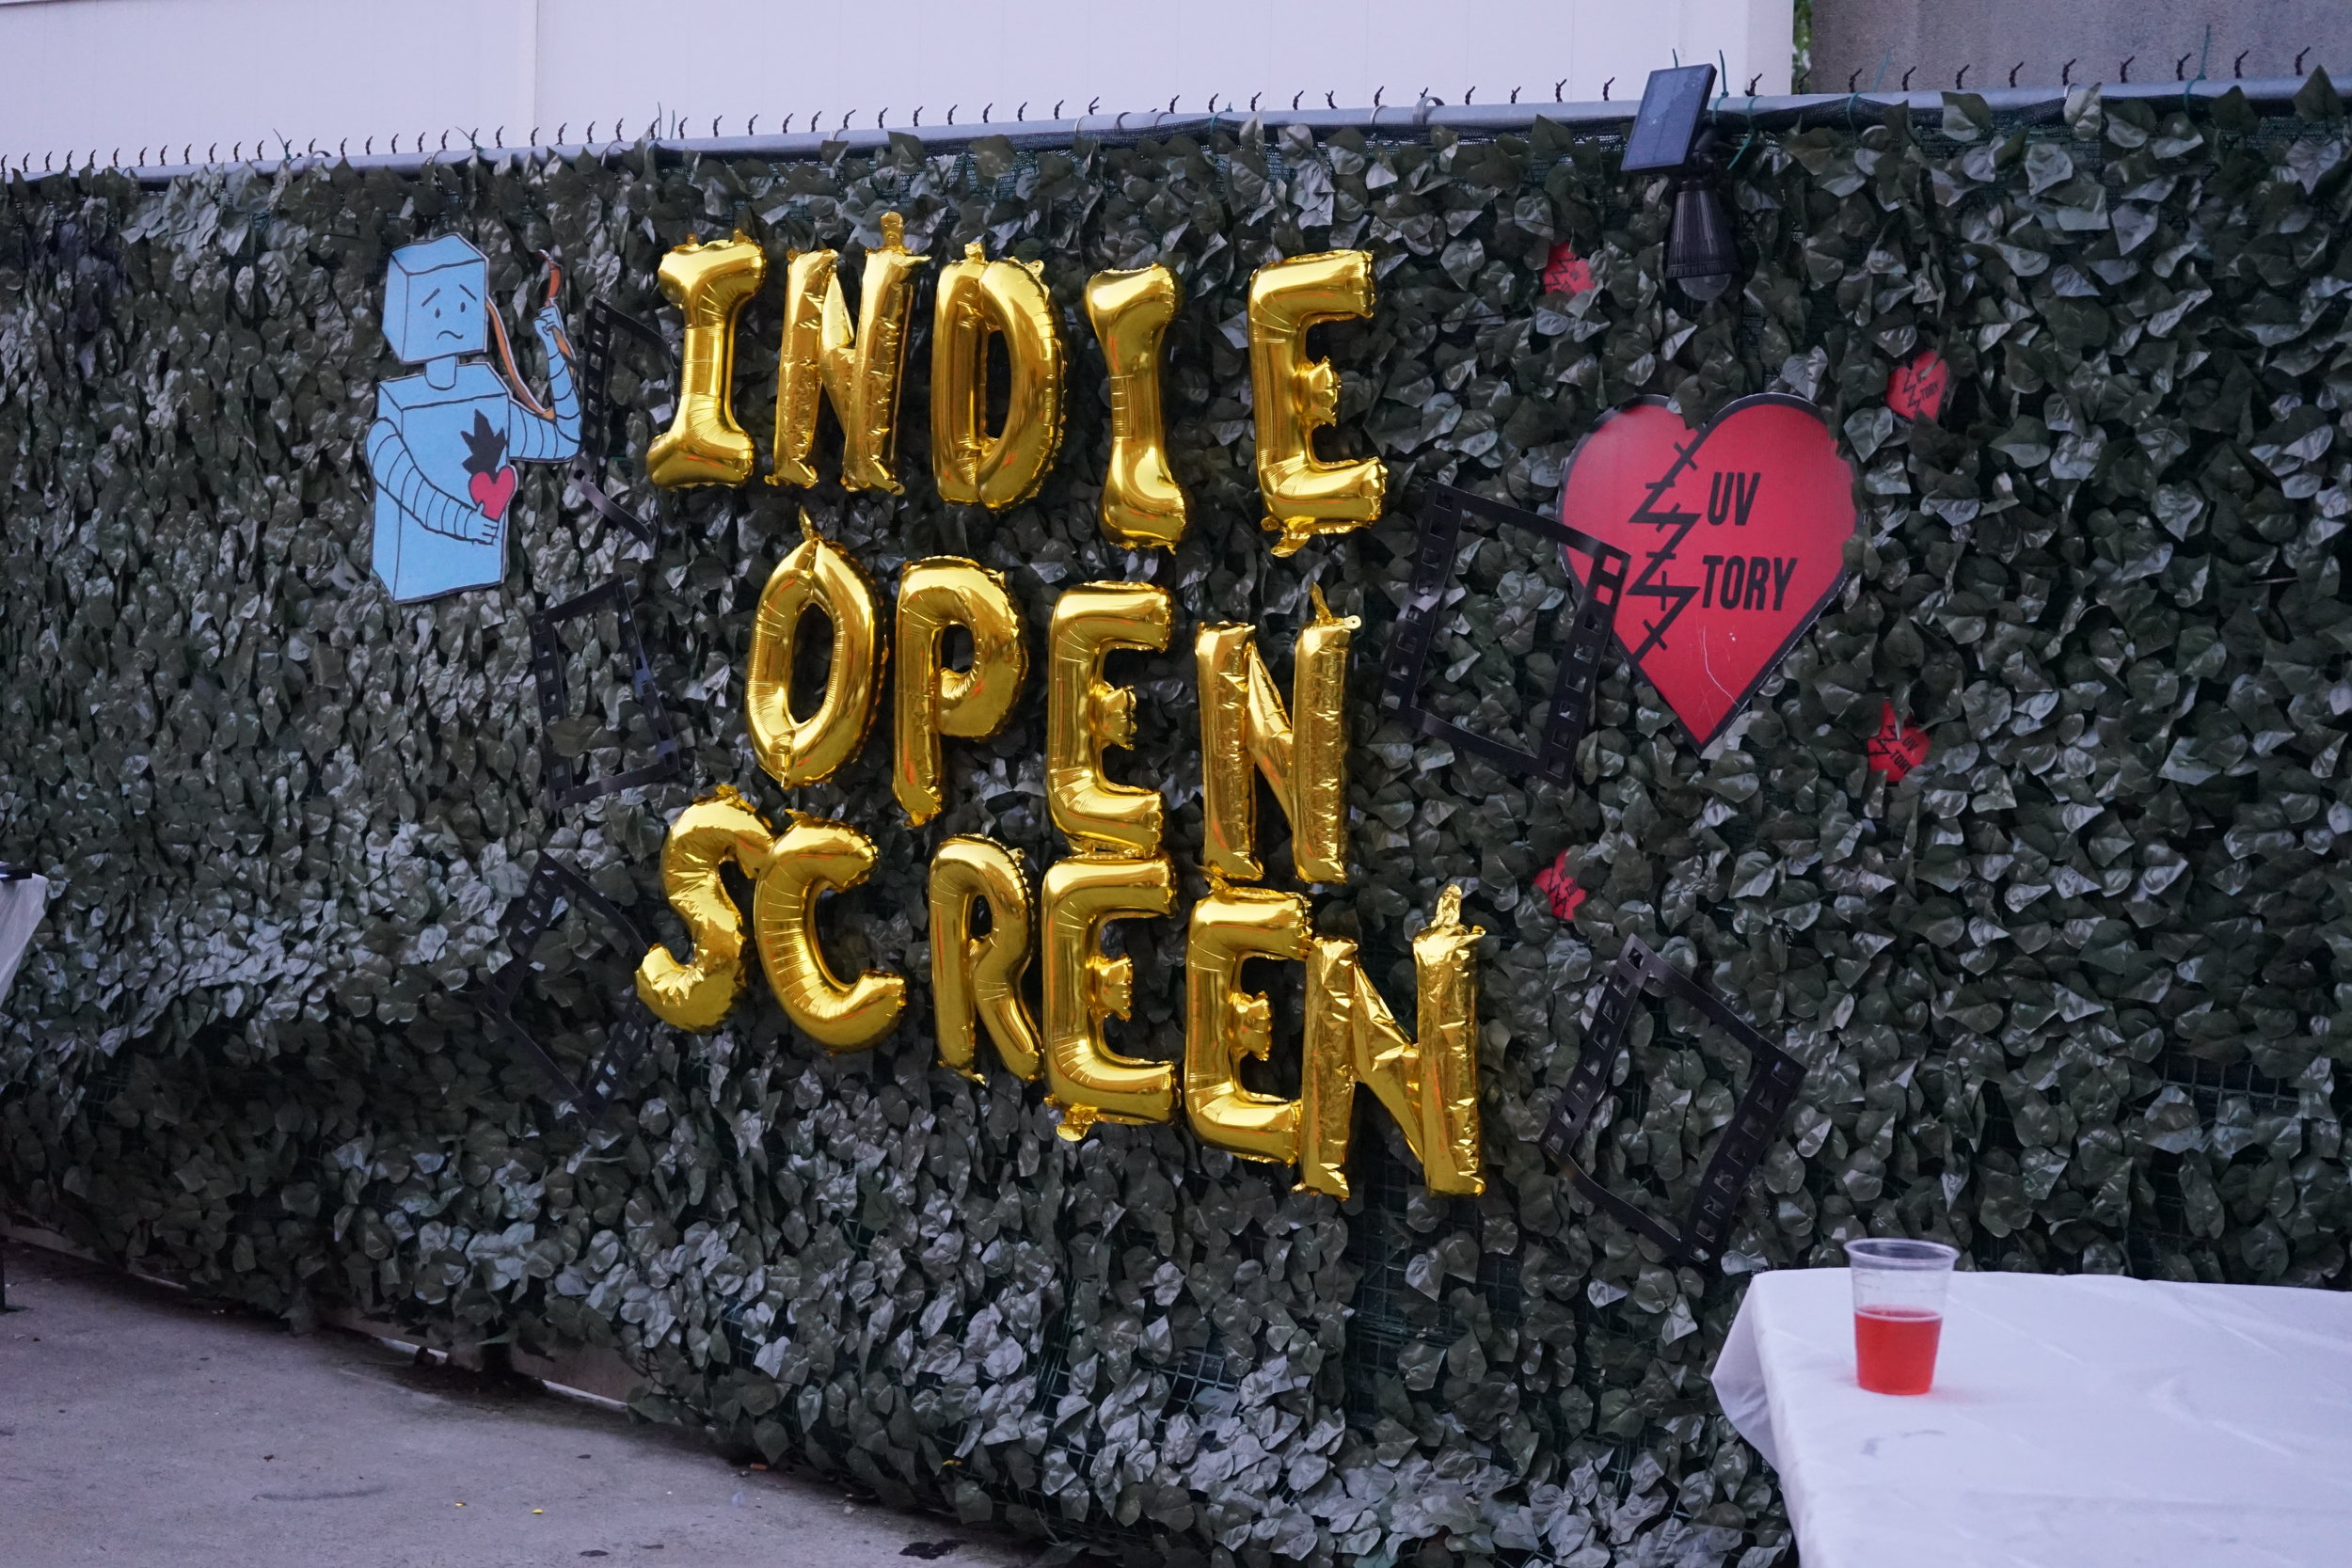 Indie Open Screen (Luv Story)